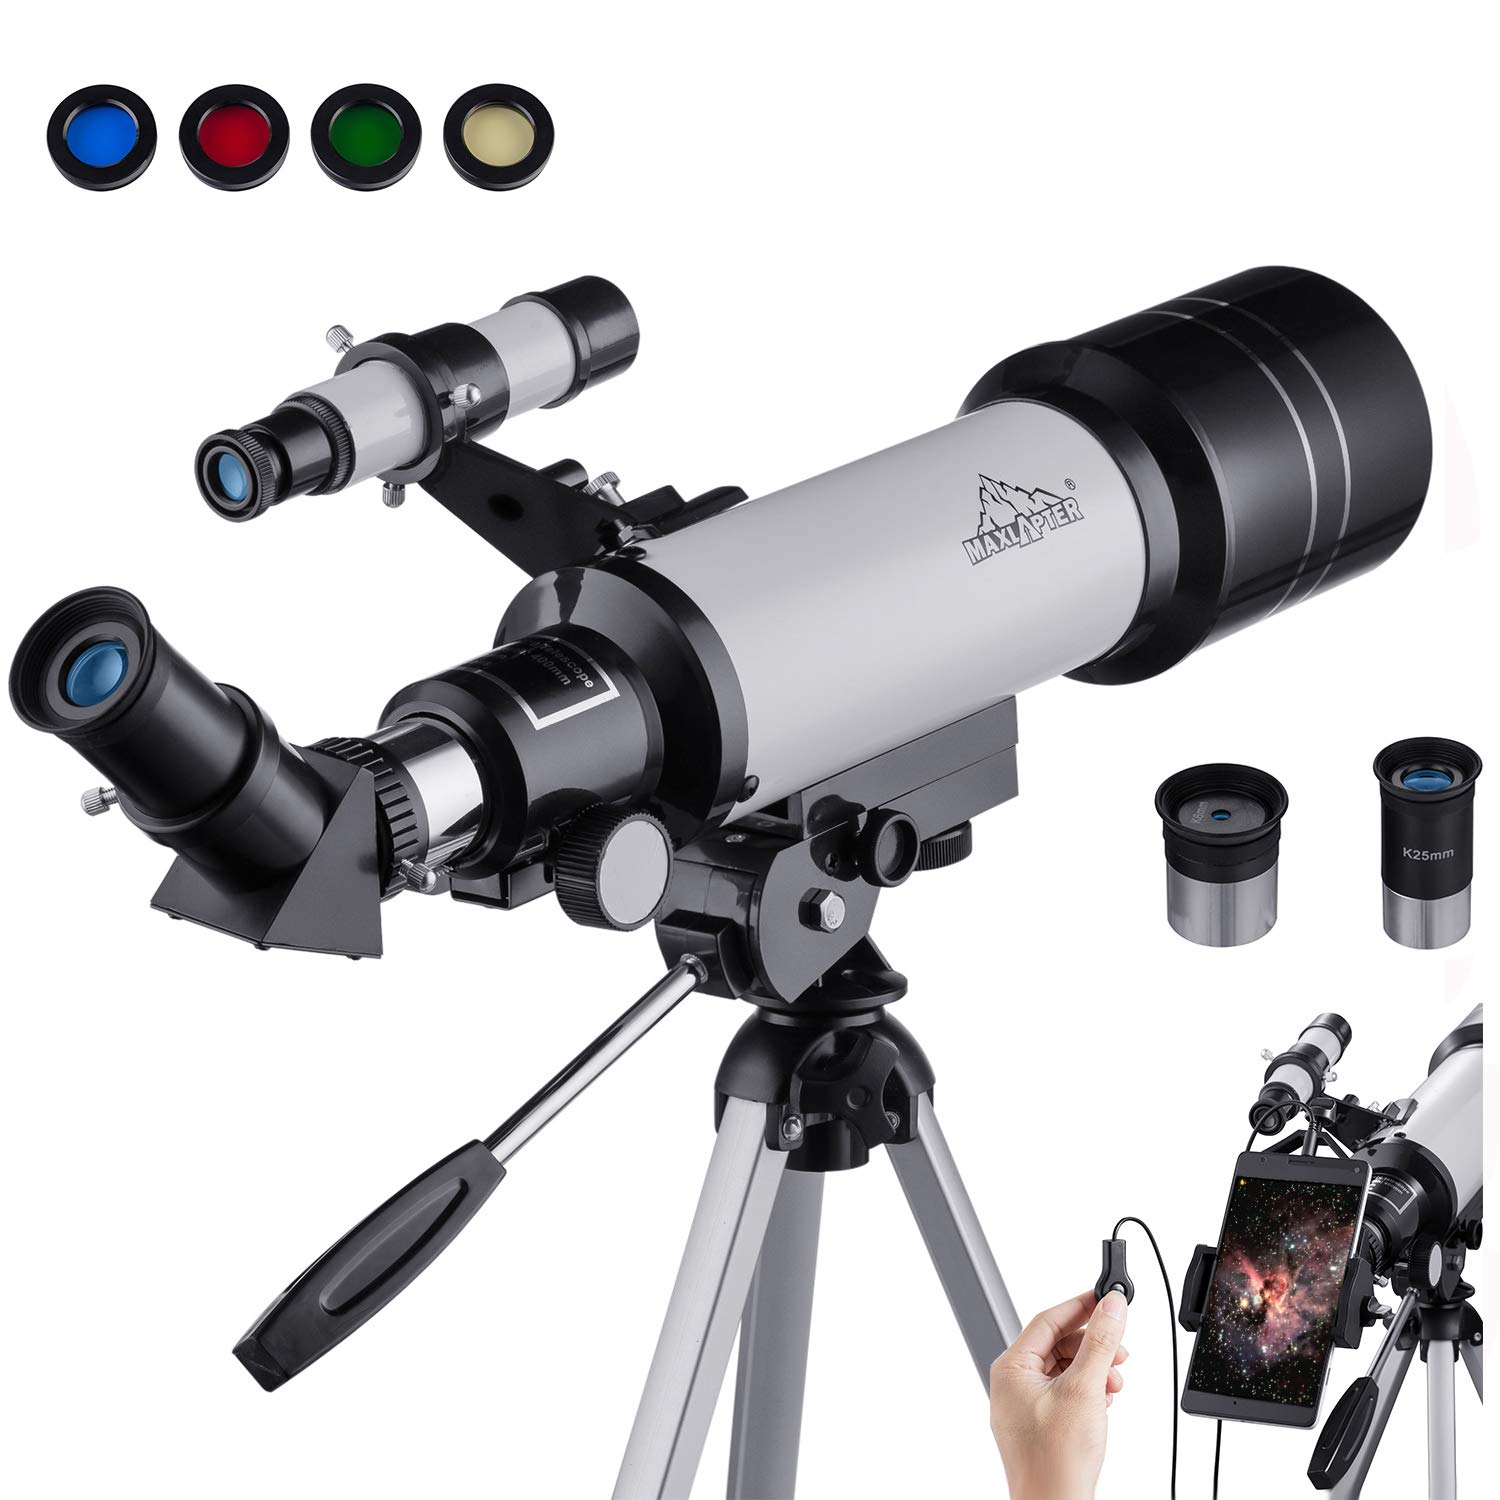 MAXLAPTER Refractive Astronomy Telescope, HD High Magnification, Dual-Use, Suitable for Adults or Children Beginners, Portable, Equipped with Tripod, Smartphone Adapter WR852-1